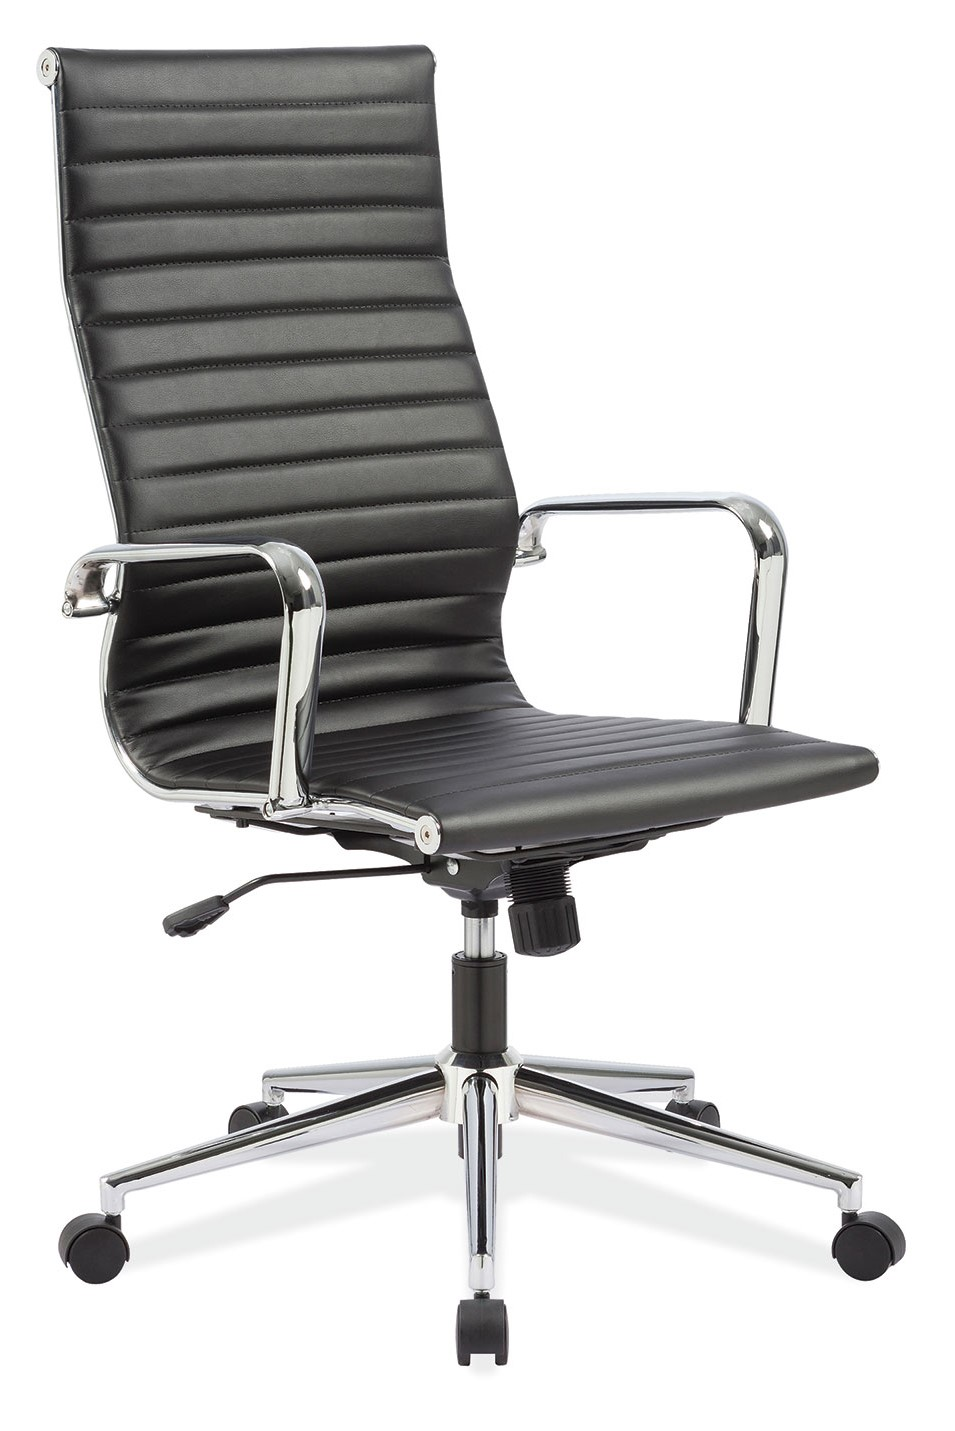 Conference Chair 8